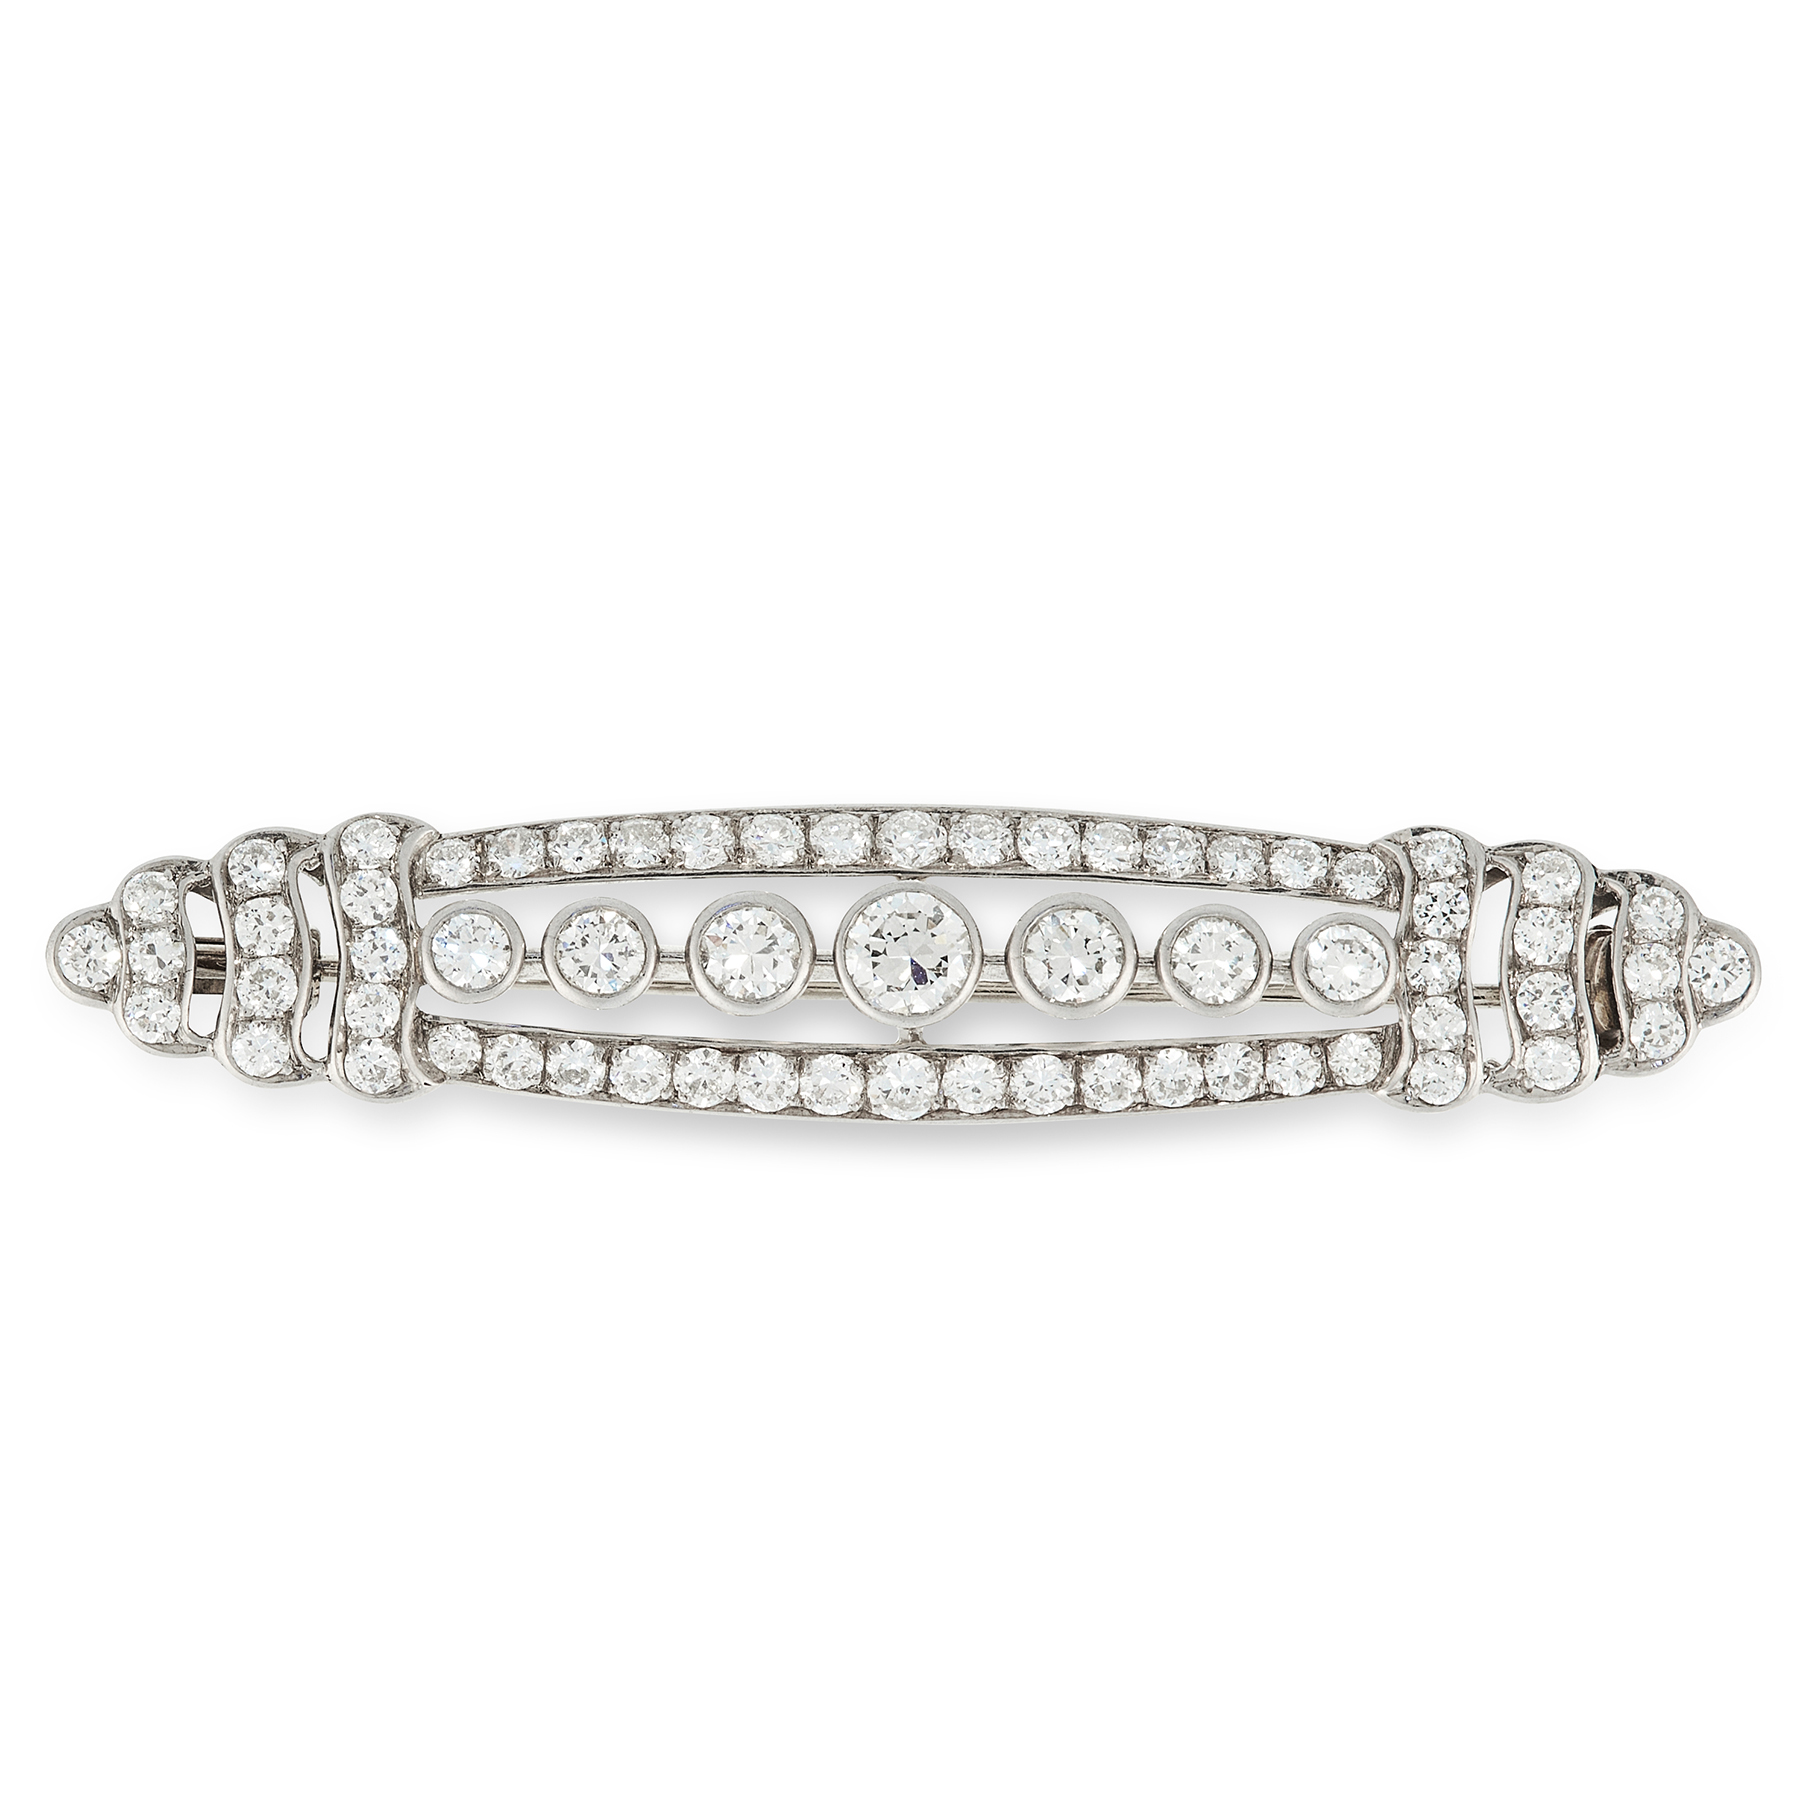 A DIAMOND BROOCH in white gold, the elongated oval body set with a row of seven principal old - Image 2 of 2